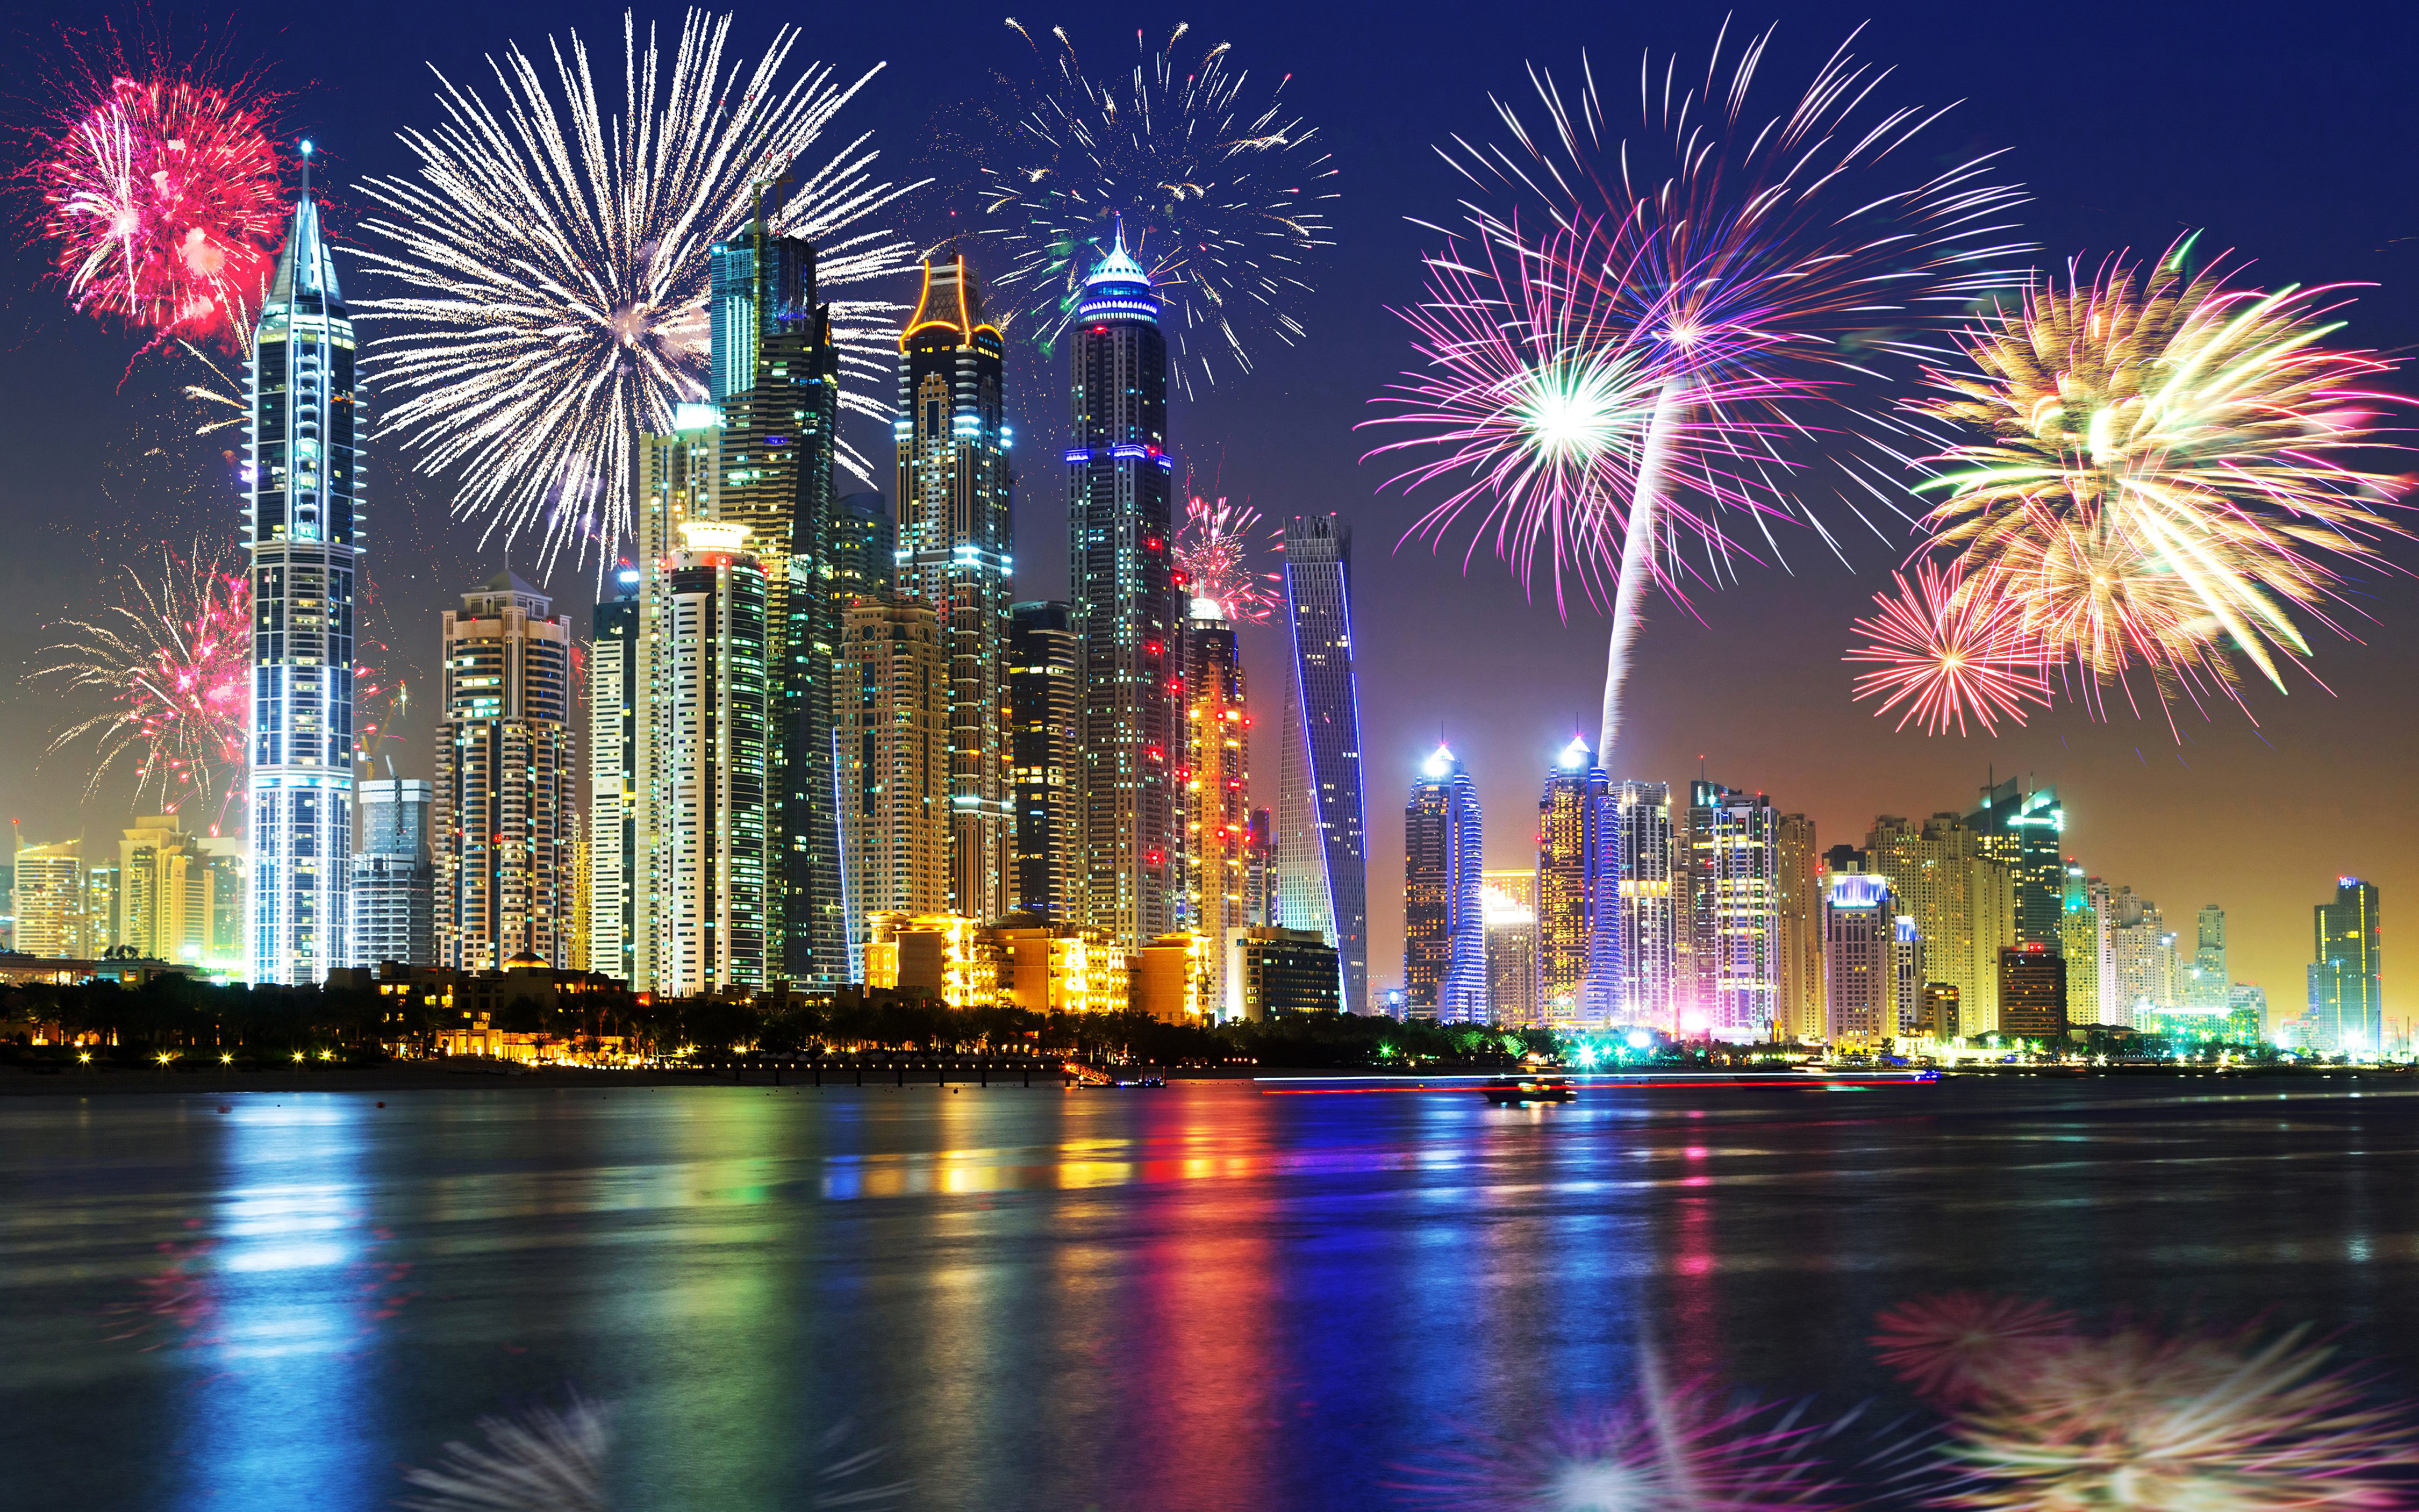 Dubai City At Night Christmas Holidays Fireworks In The